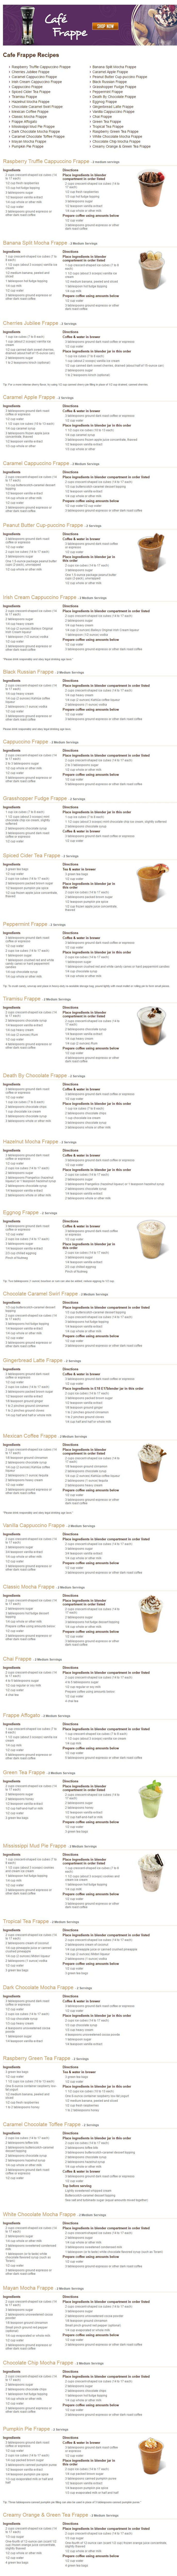 http://sawyerfredericksforum.com/frapperecipes.jpg